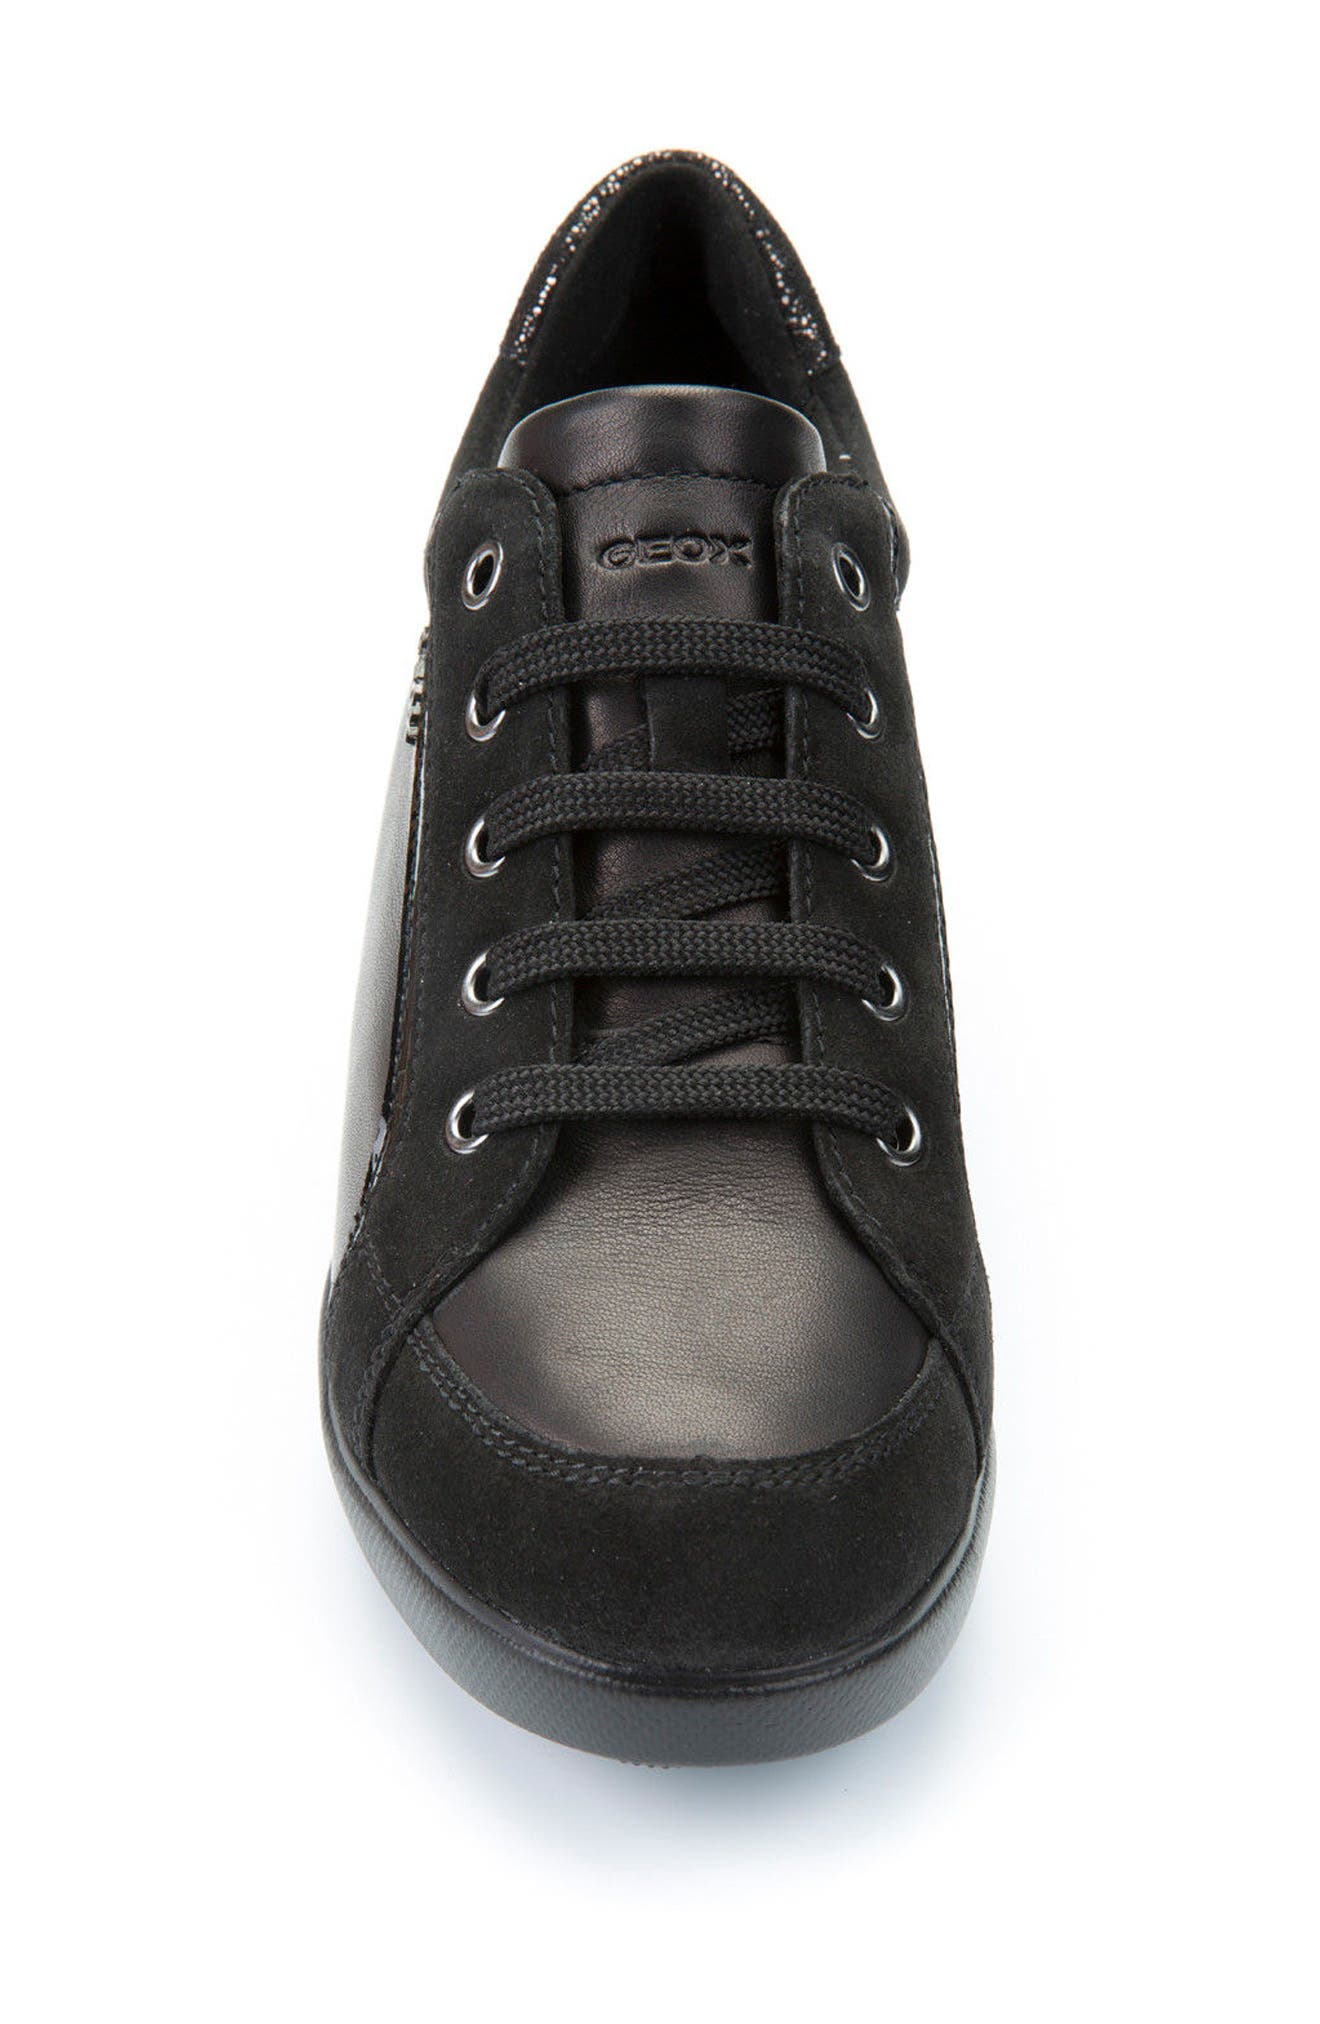 Stardust Wedge Sneaker,                             Alternate thumbnail 4, color,                             001